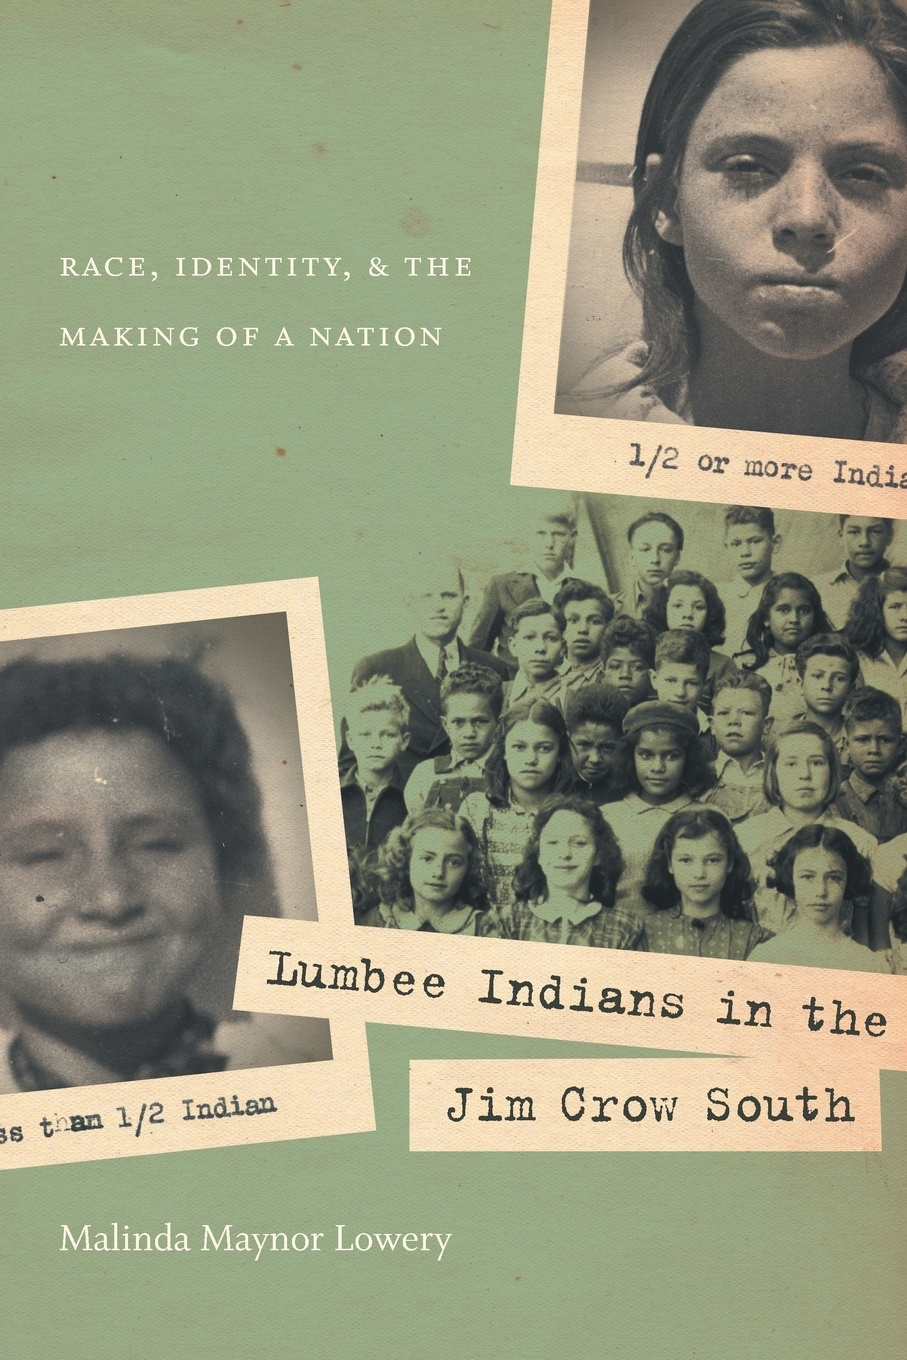 Lumbee Indians in the Jim Crow South. Race, Identity, and the Making of a Nation. Malinda Maynor Lowery